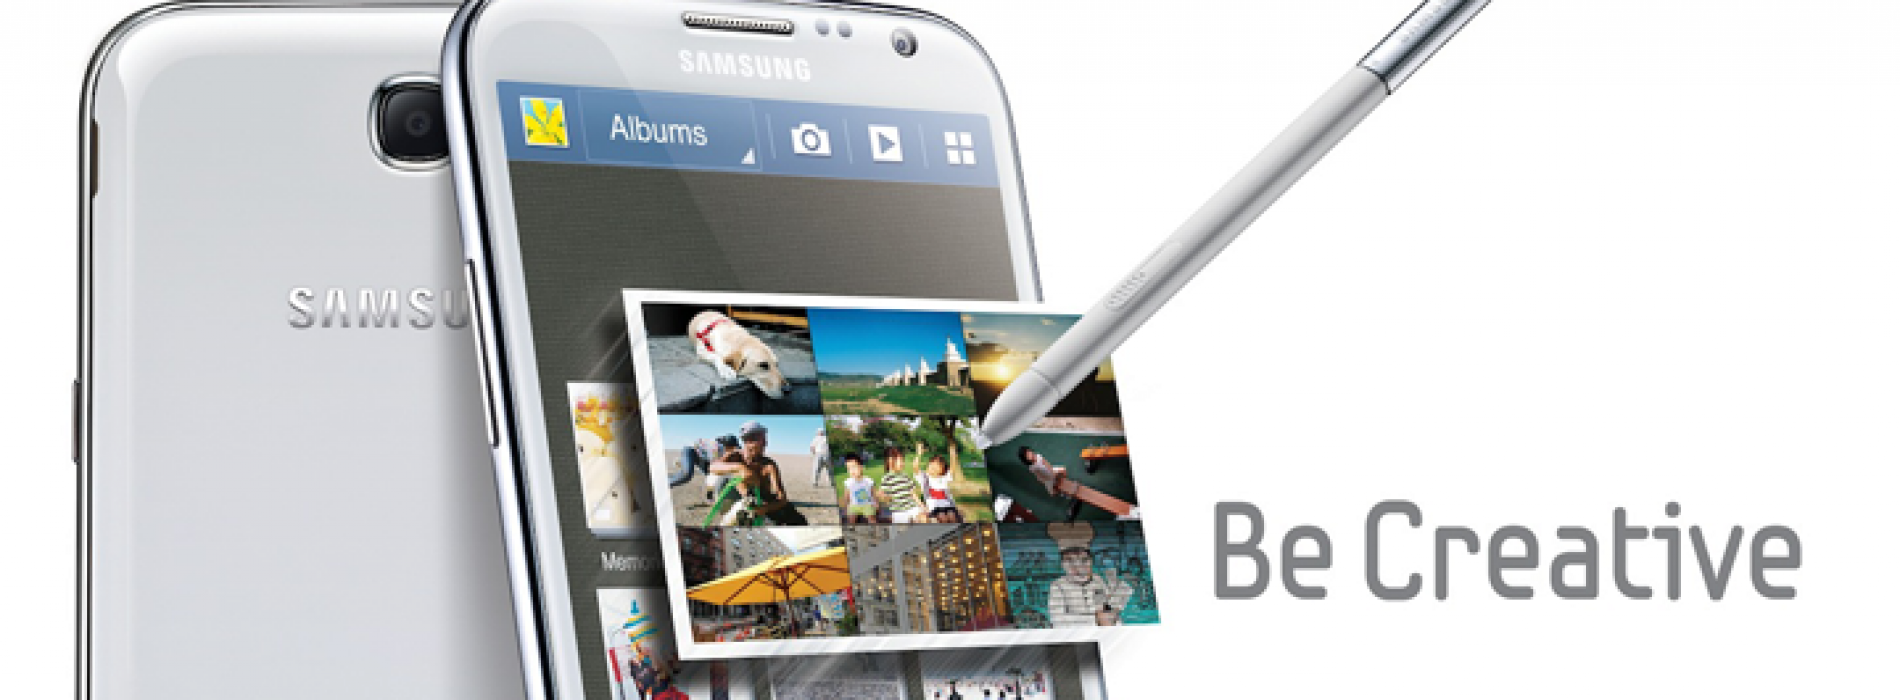 Galaxy Note II may sell three times faster than predecessor